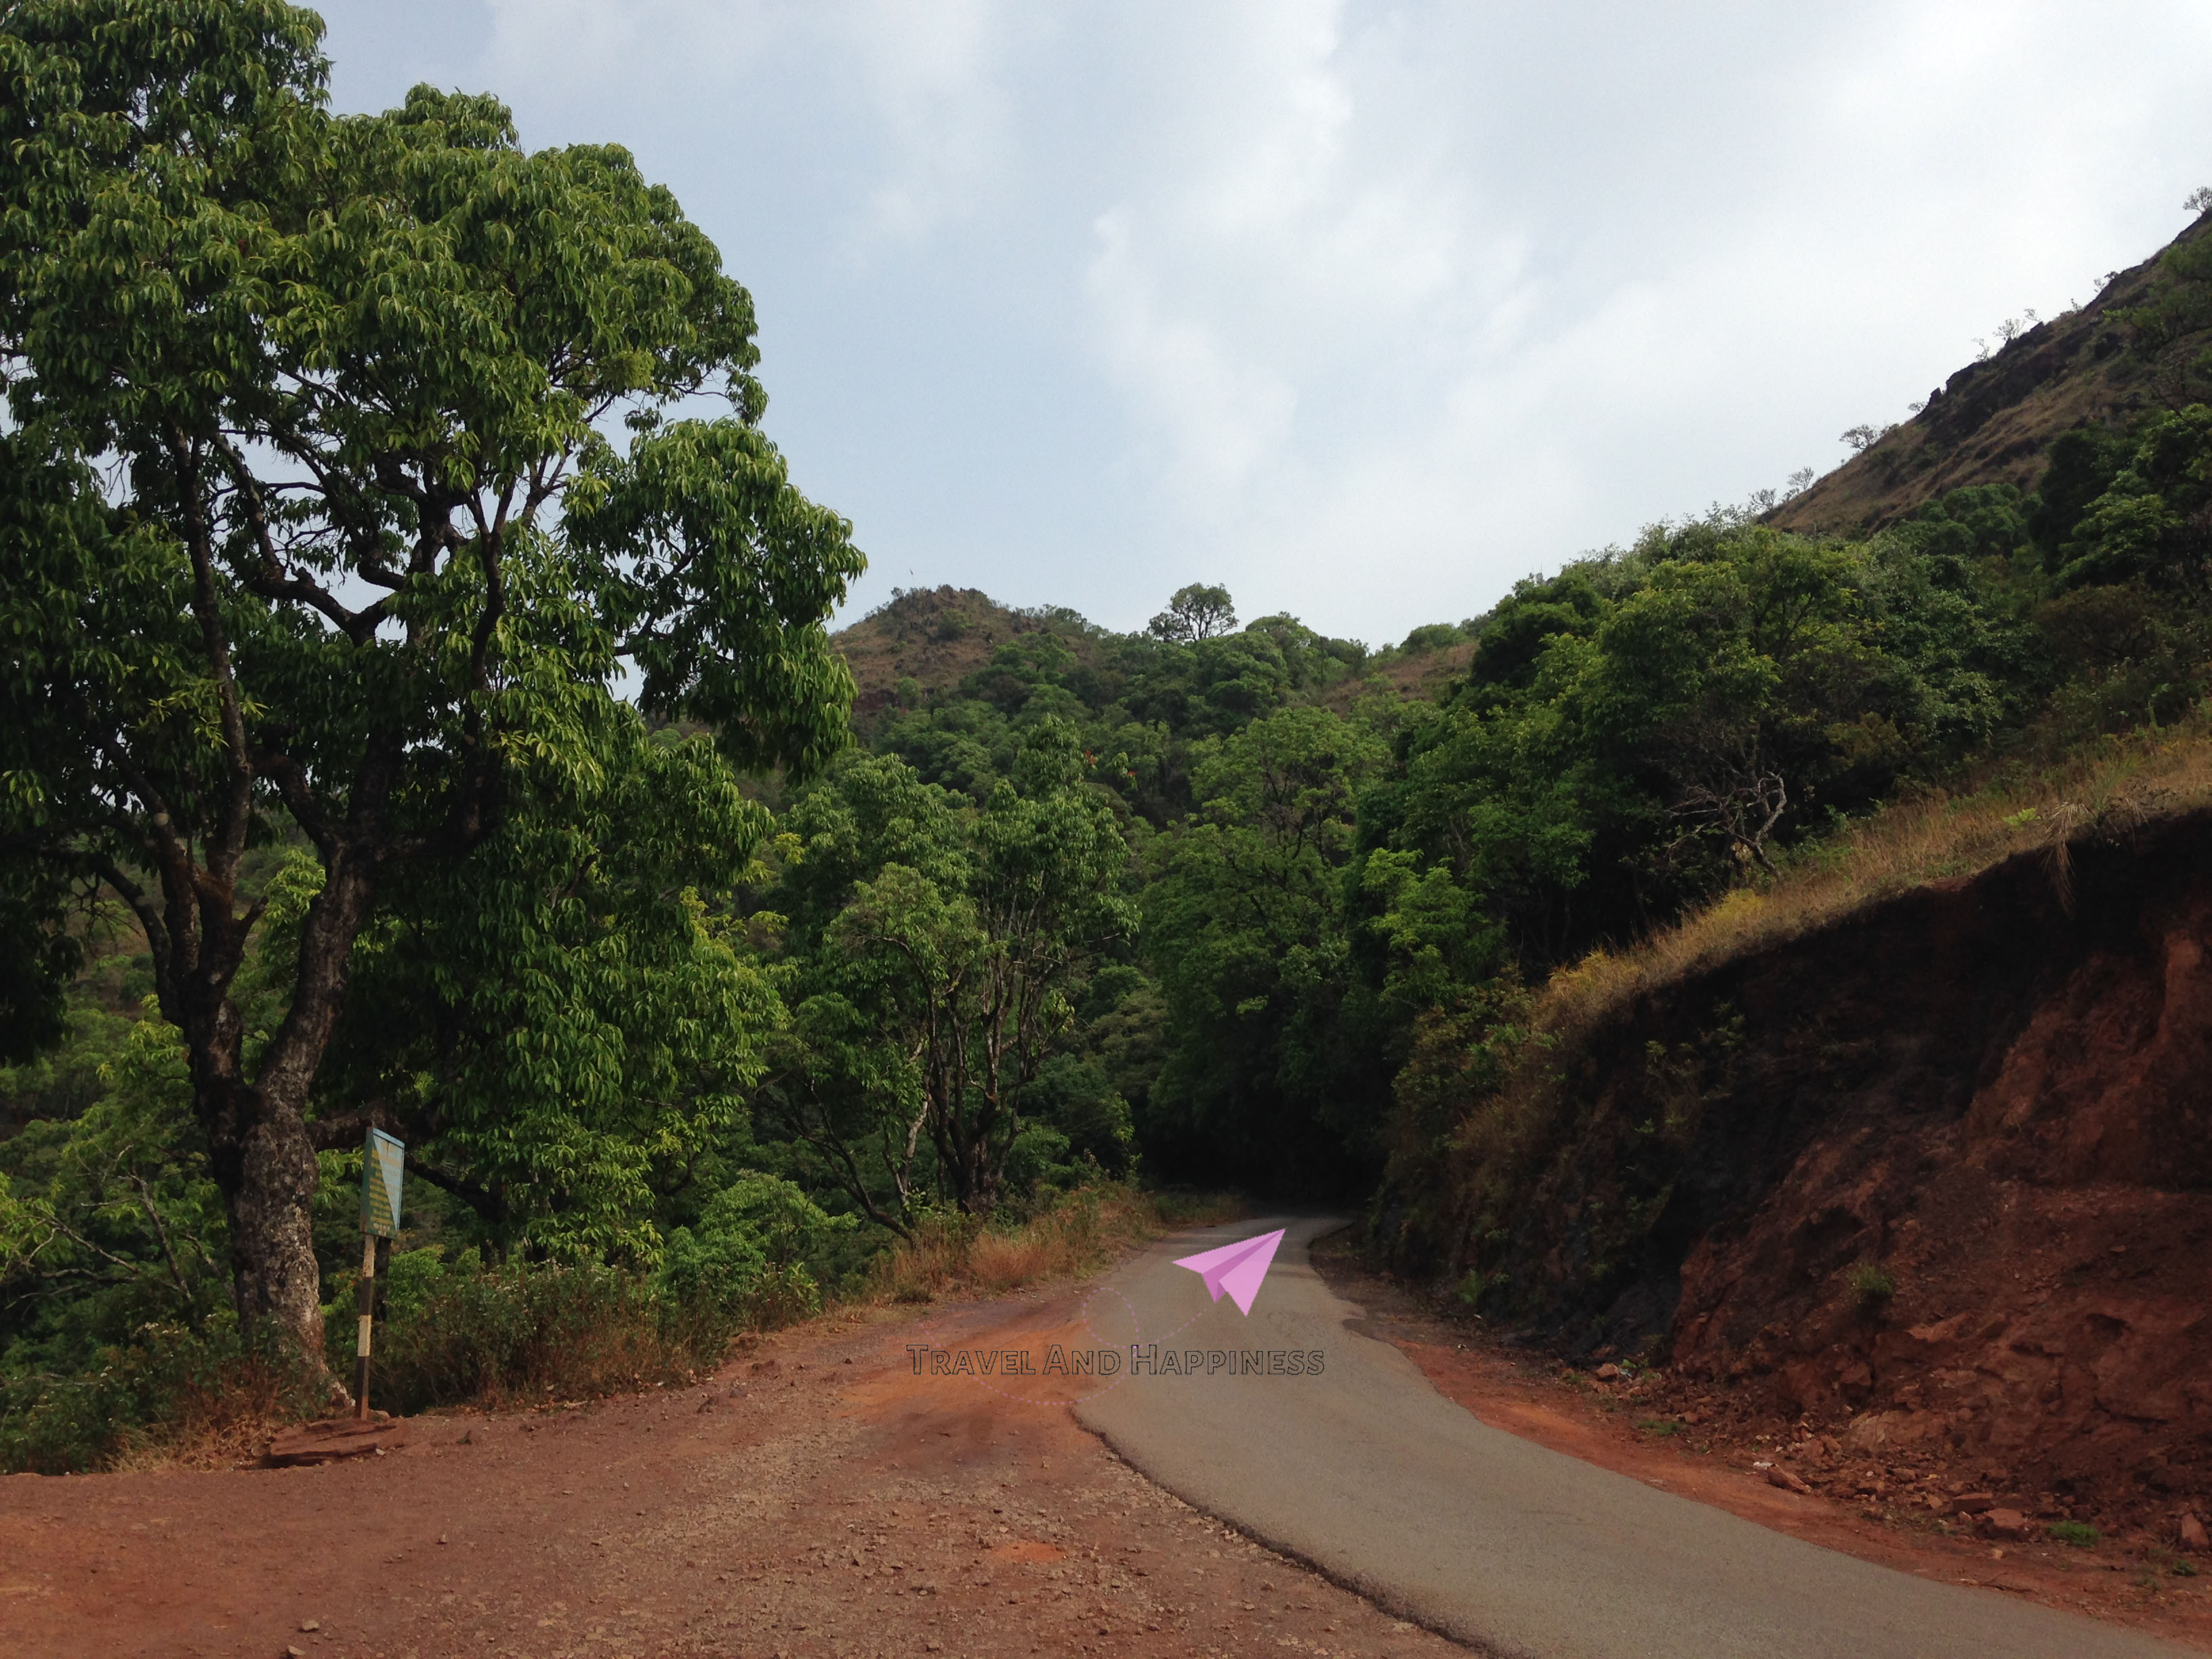 On the way to the mountains of western ghats